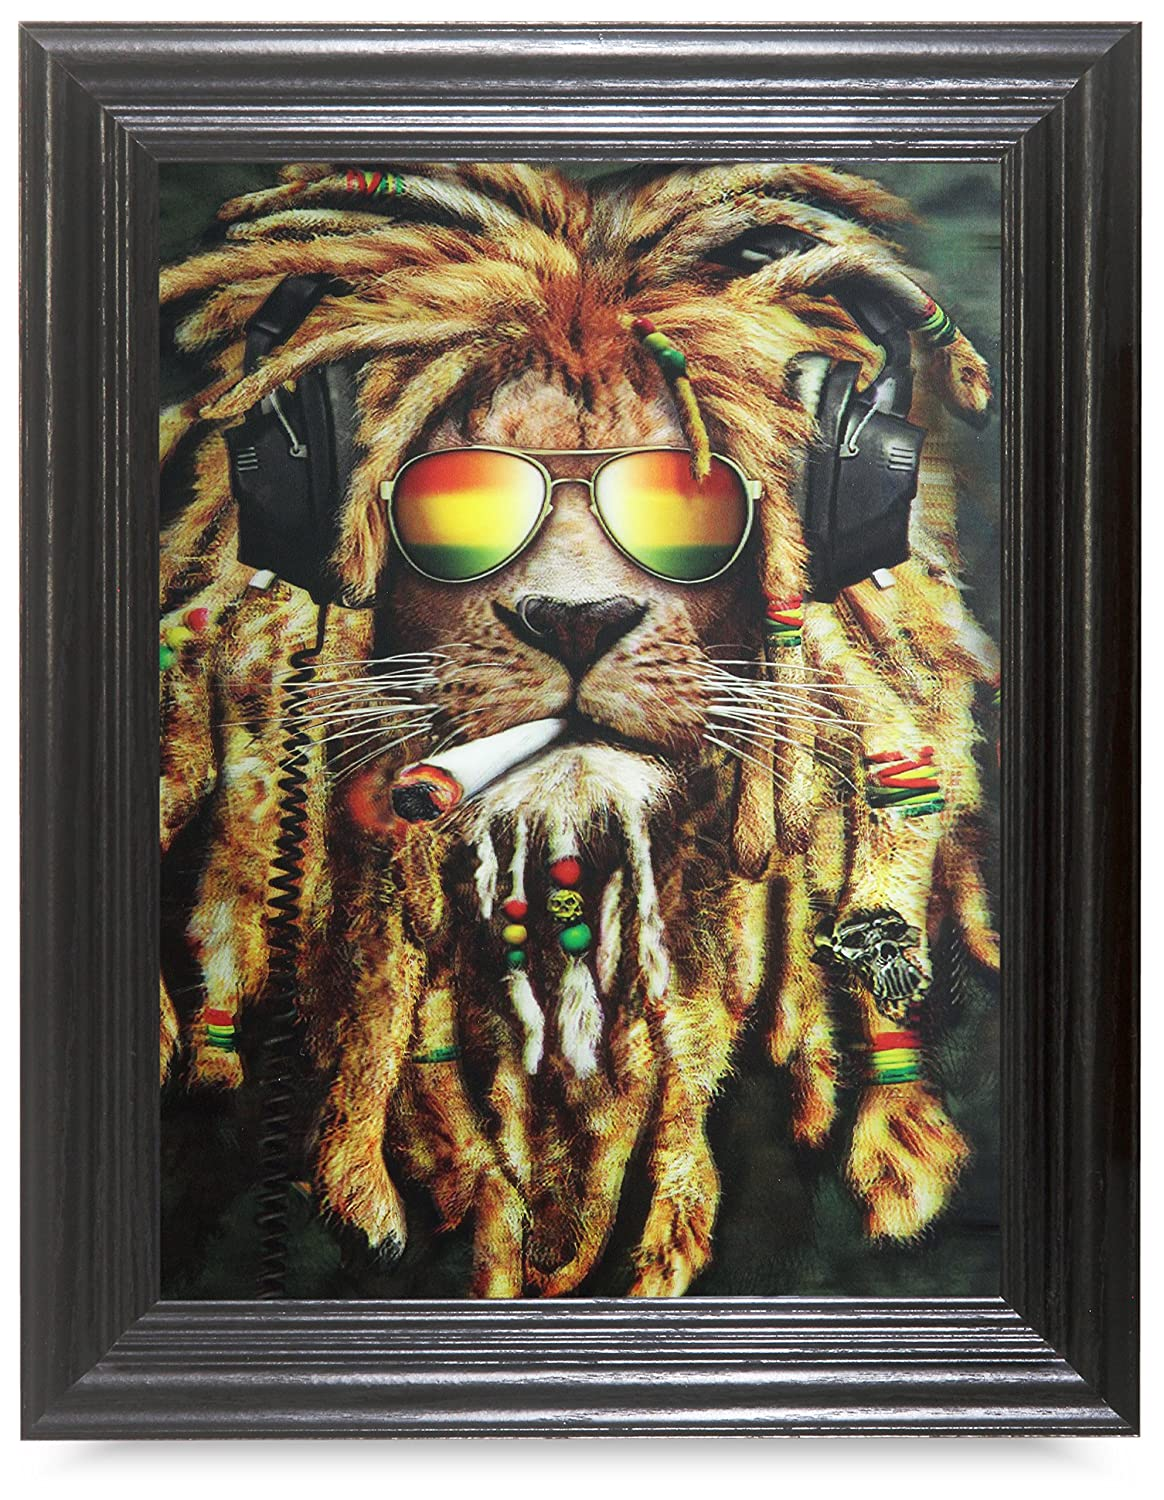 Amazon rasta lion 3d framed holographic wall art lenticular amazon rasta lion 3d framed holographic wall art lenticular technology causes the artwork to have depth and move hologram style images holographic jeuxipadfo Images